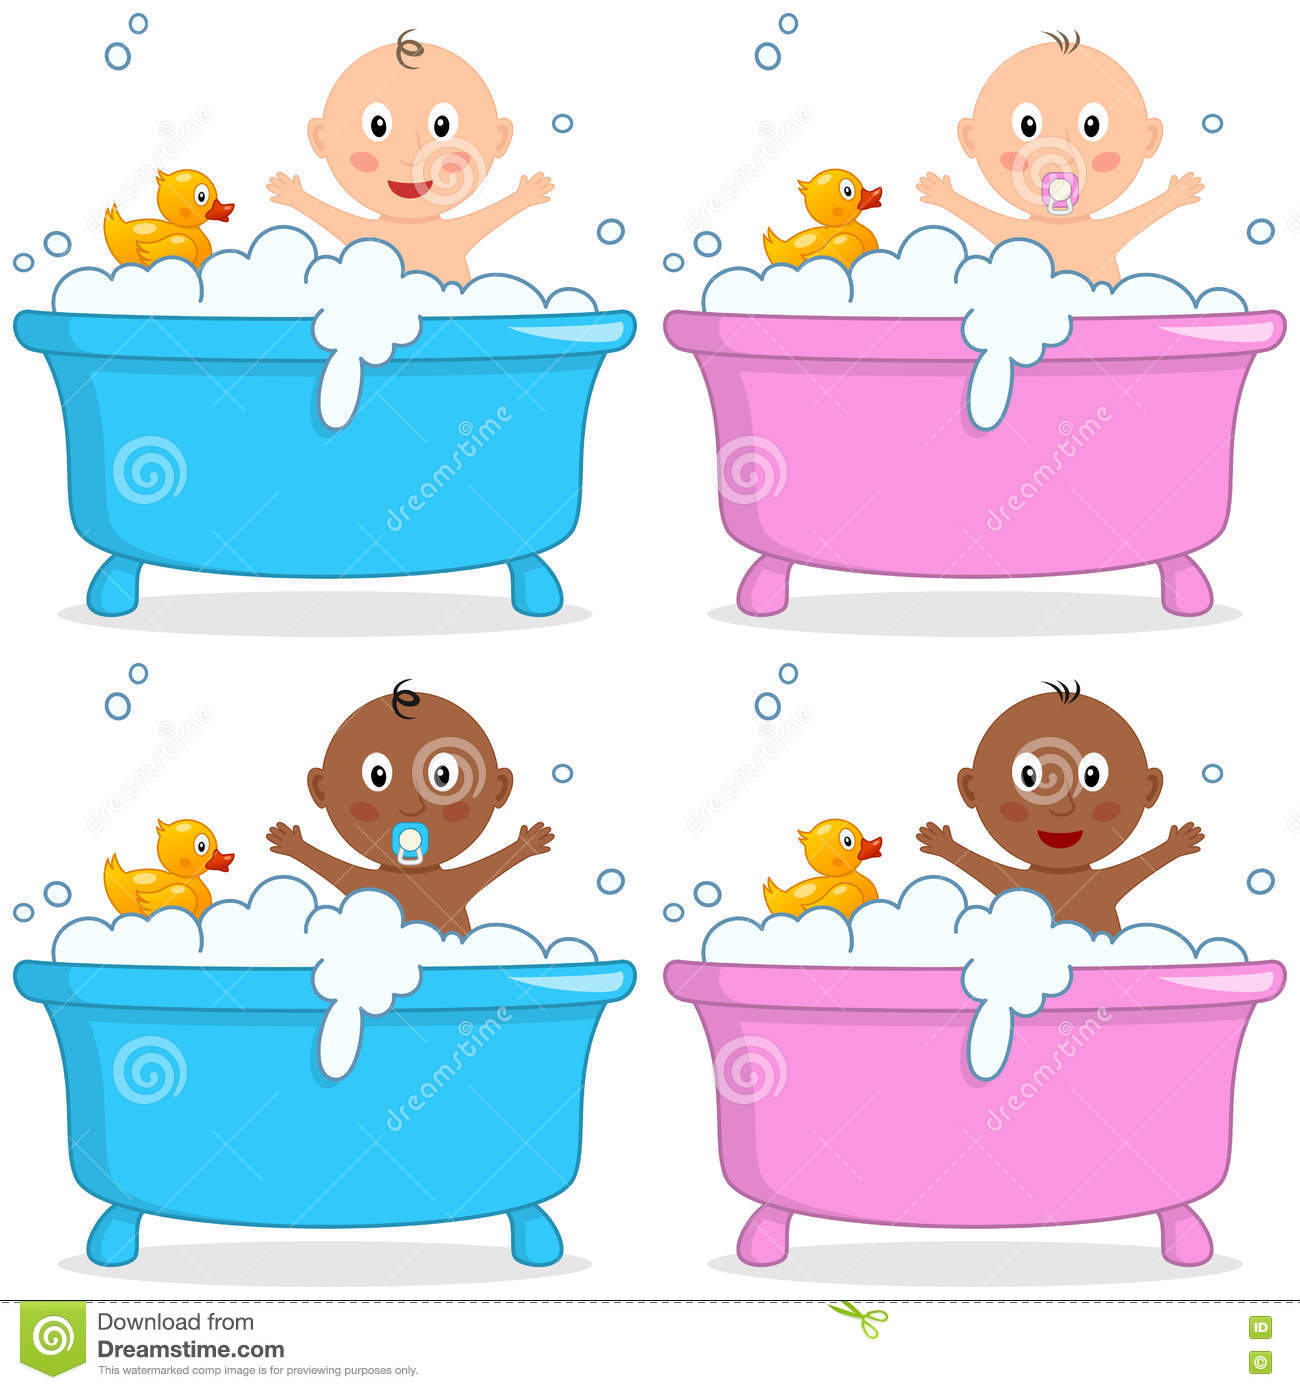 bath time with boy girl rubber duck stock vector illustration of happiness isolated 72945434. Black Bedroom Furniture Sets. Home Design Ideas